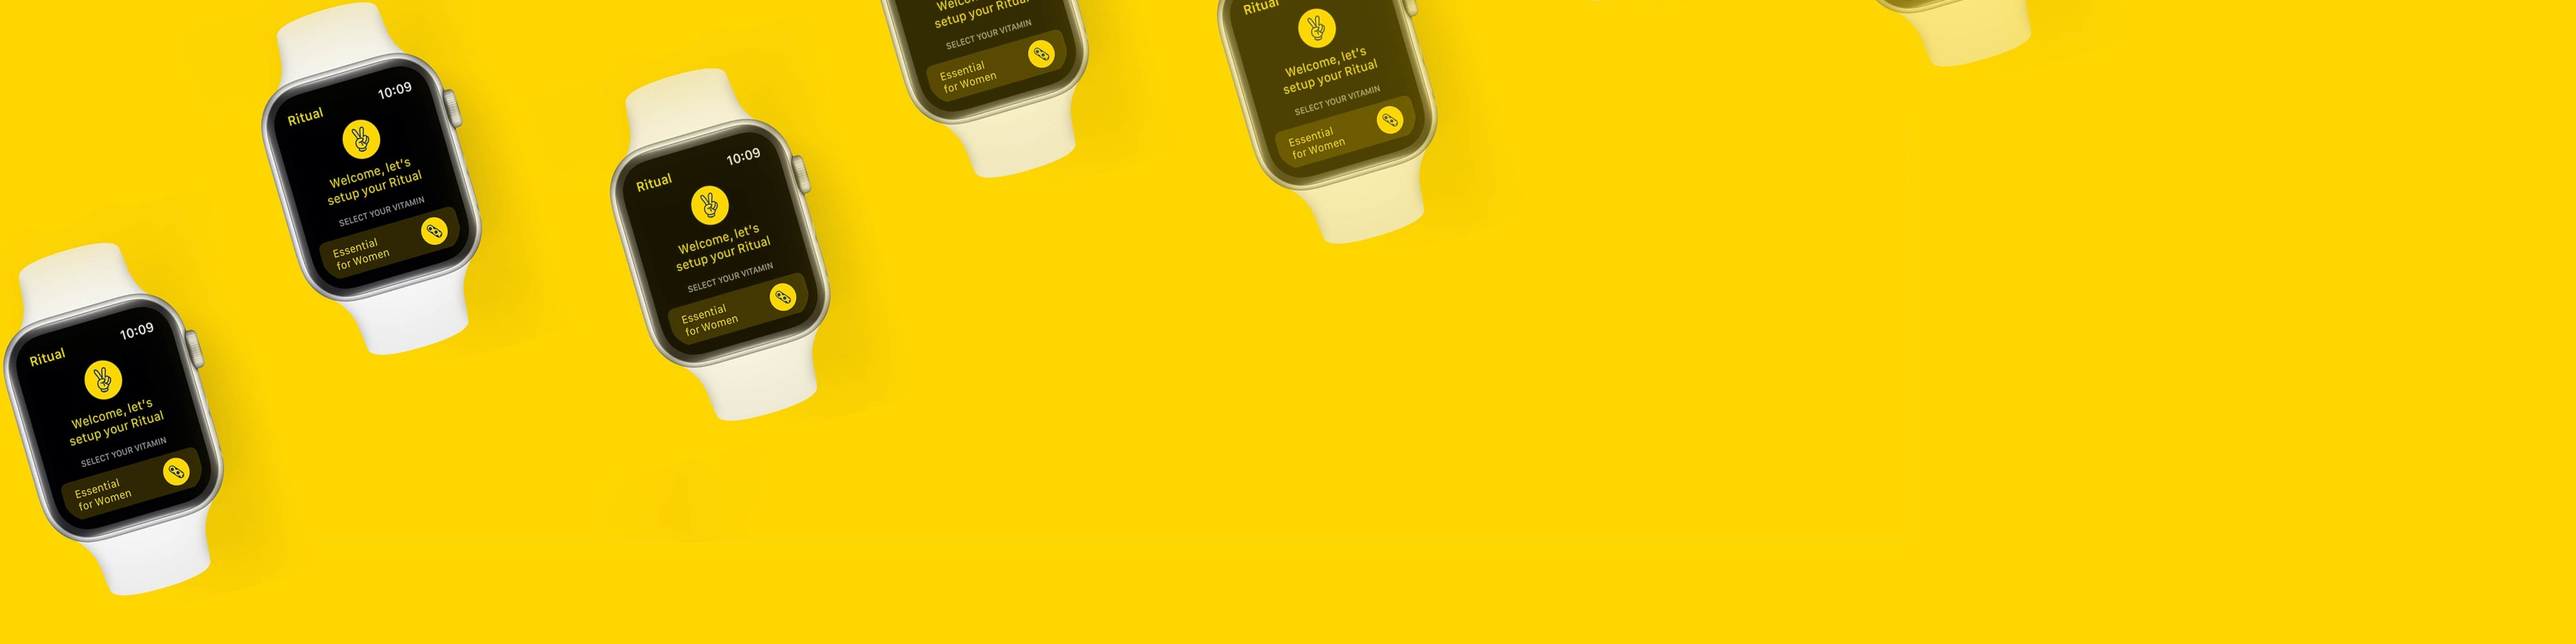 Meet our new app for Apple Watch, which will help you remember to take your vitamins.